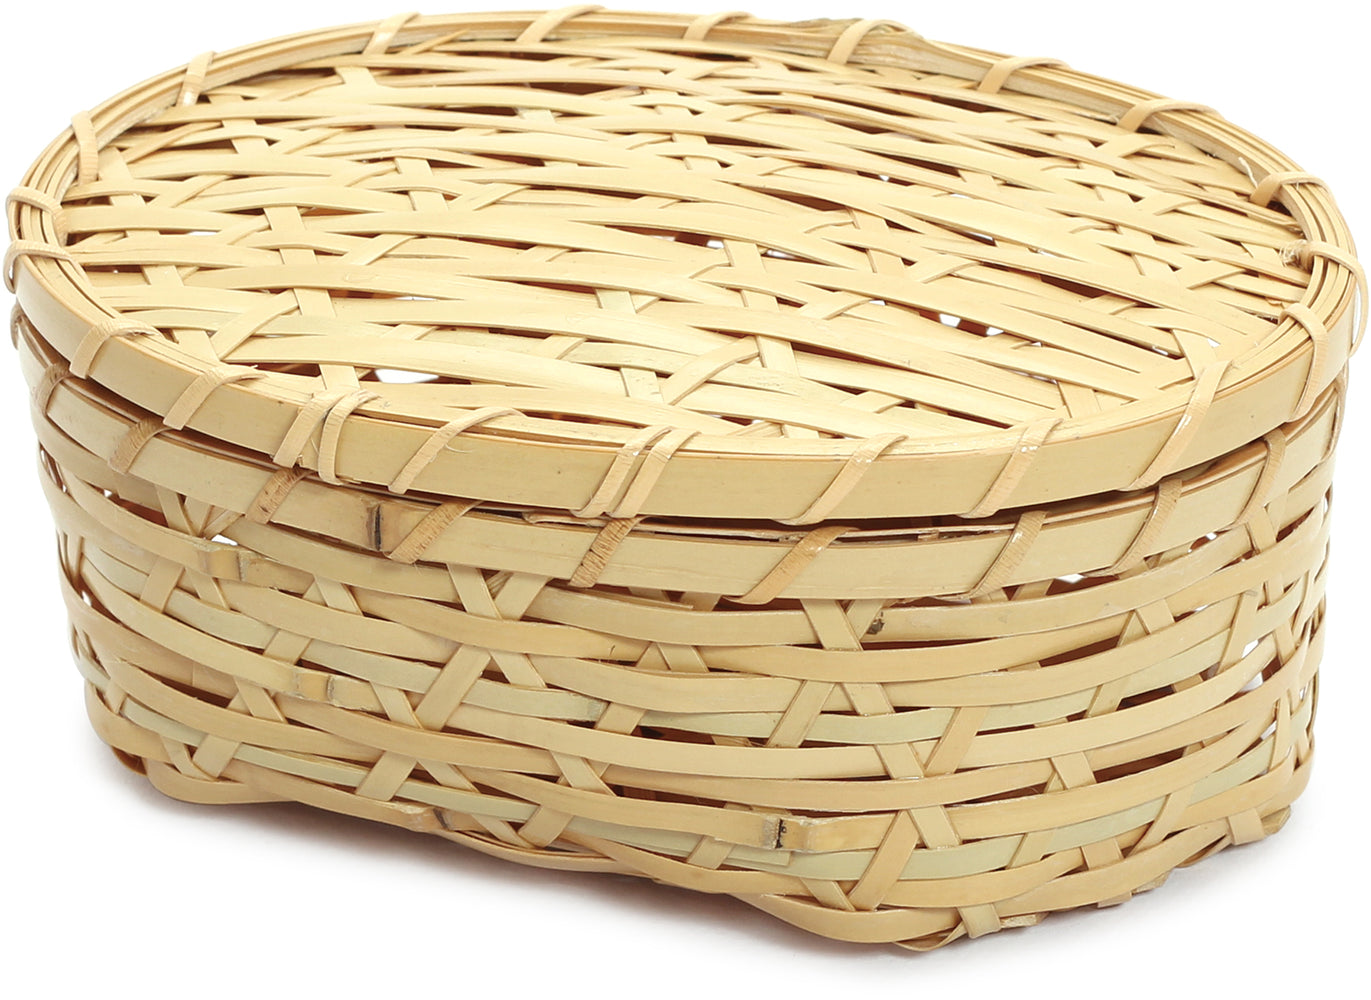 Weaved Bamboo Bento Box Oval | Large